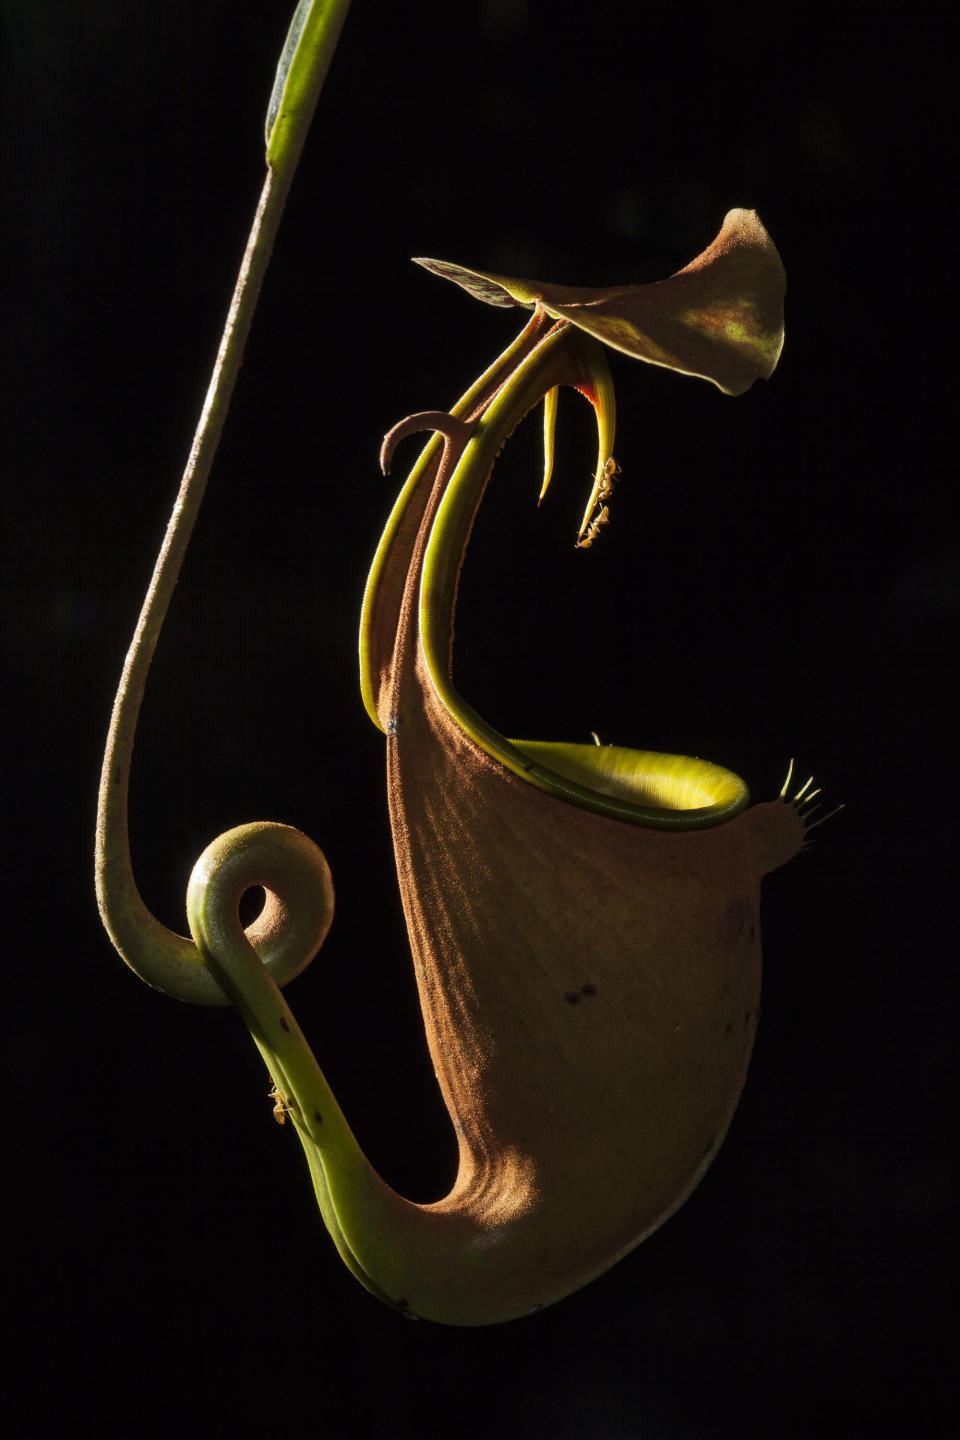 <p>Pitcher plants are carnivorous plants, which draw nutrients from trapped and digested insects. The species shown here (Nepenthes bicalcarata) secretes sweet nectar on the rim and fang-like structures, which are very slippery for most insects except for one specialised ant (Camponotus schmitzii). The ants live in the curled hollow tendrils of the plant and manage to climb in and out of the pitcher without any difficulties to steal a bit of nectar, as shown here. This image was named as runner up in the Ecology and Environmental Science category. (PA) </p>